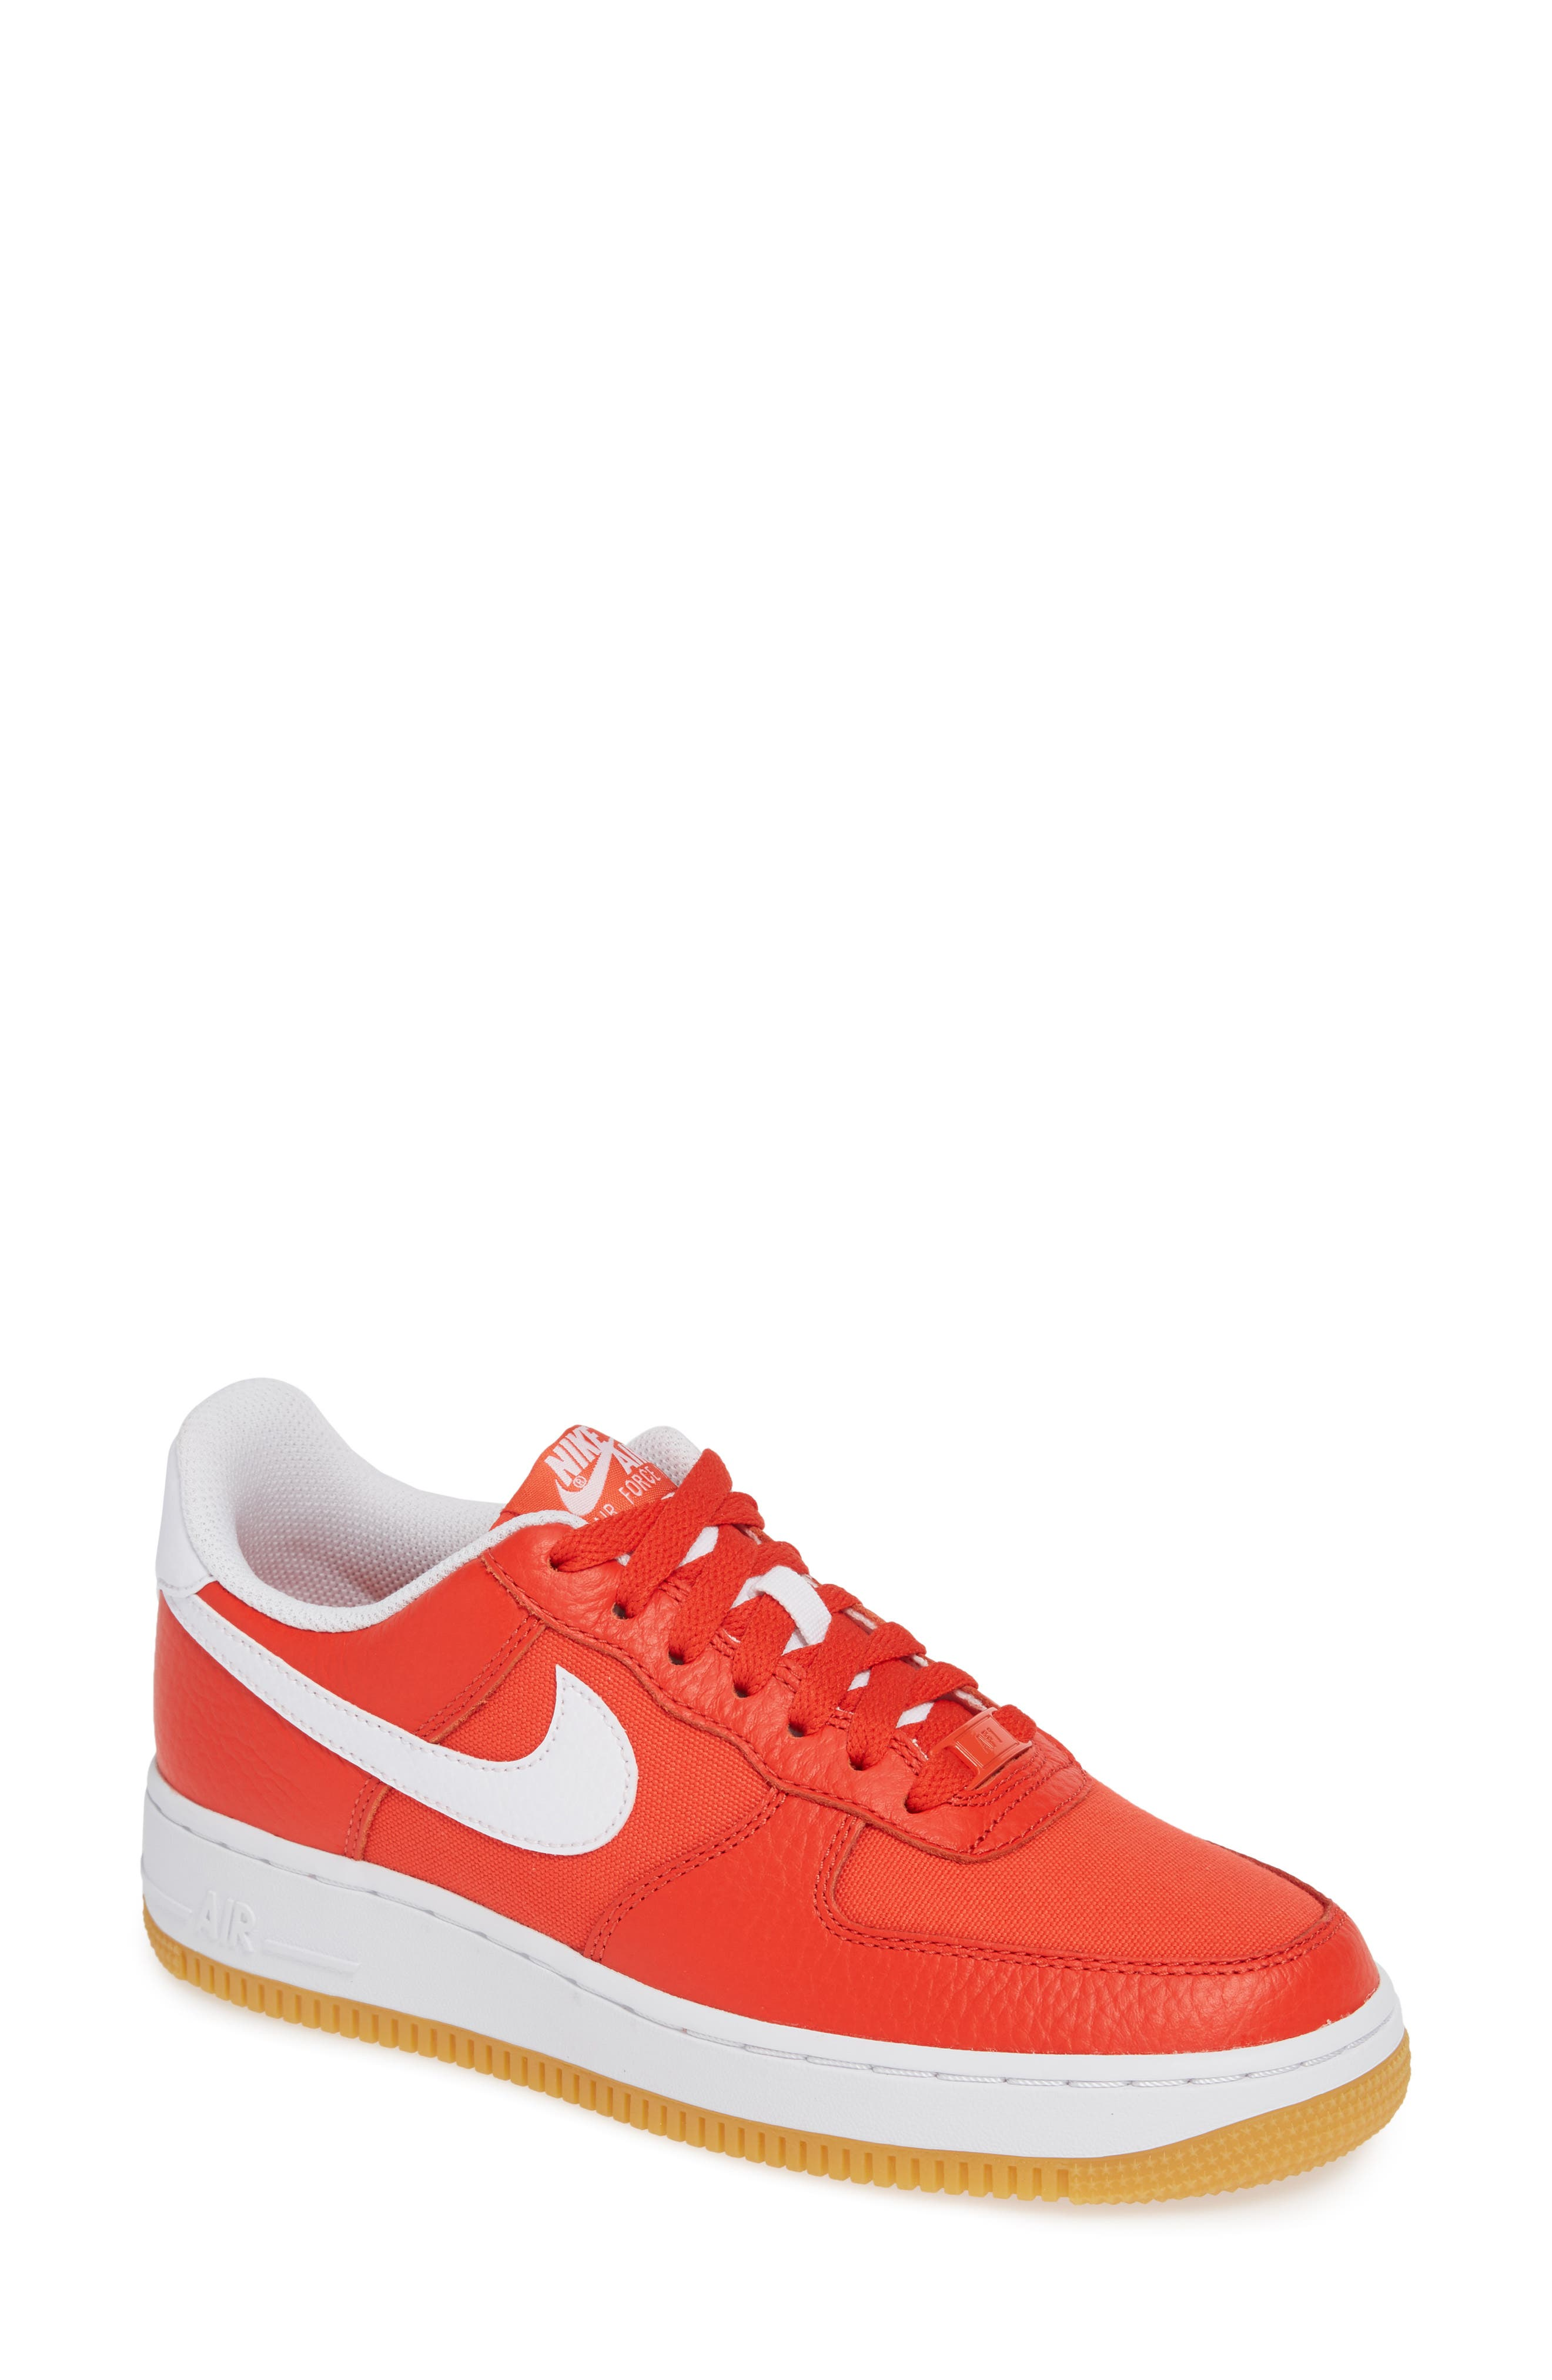 Air Force 1 '07 Premium Sneaker,                         Main,                         color, RED/ WHITE/ LIGHT BROWN